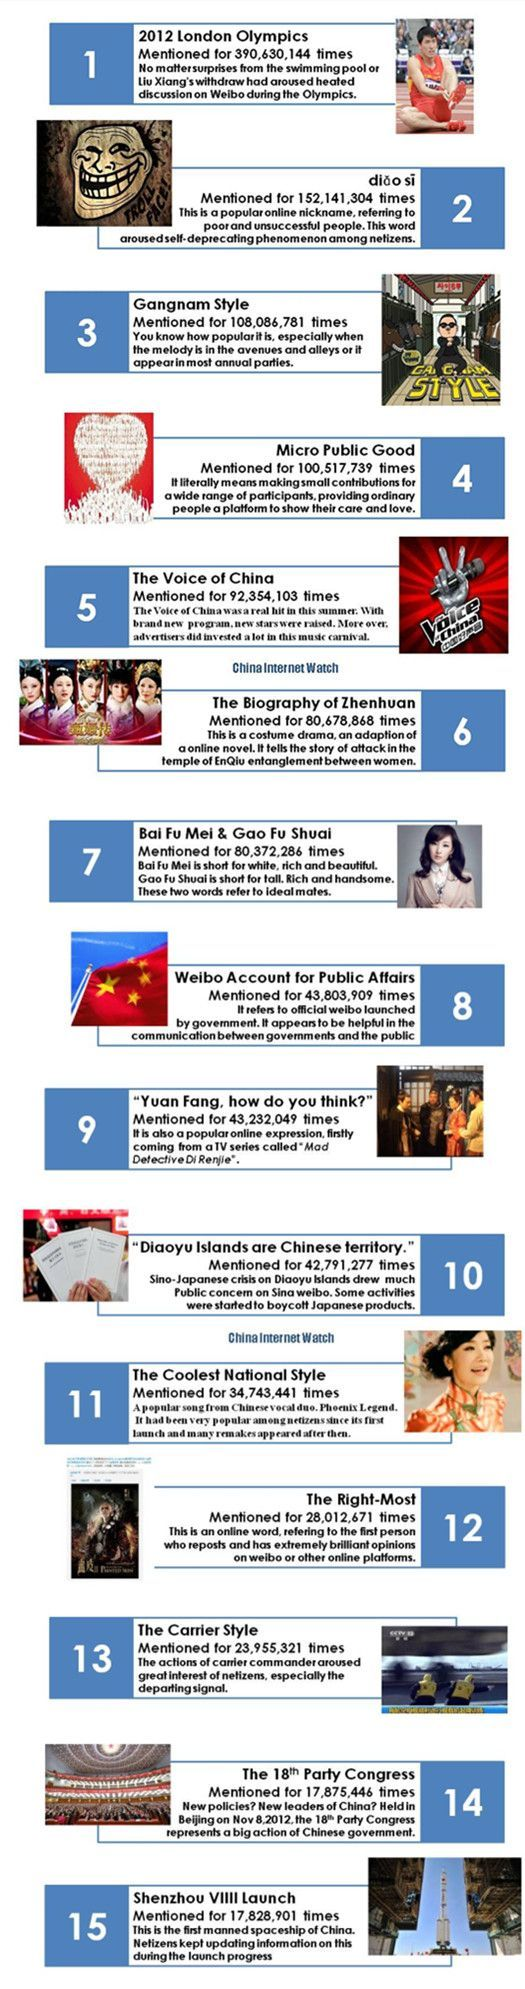 Top 15 Most Popular Topics on Weibo 2012